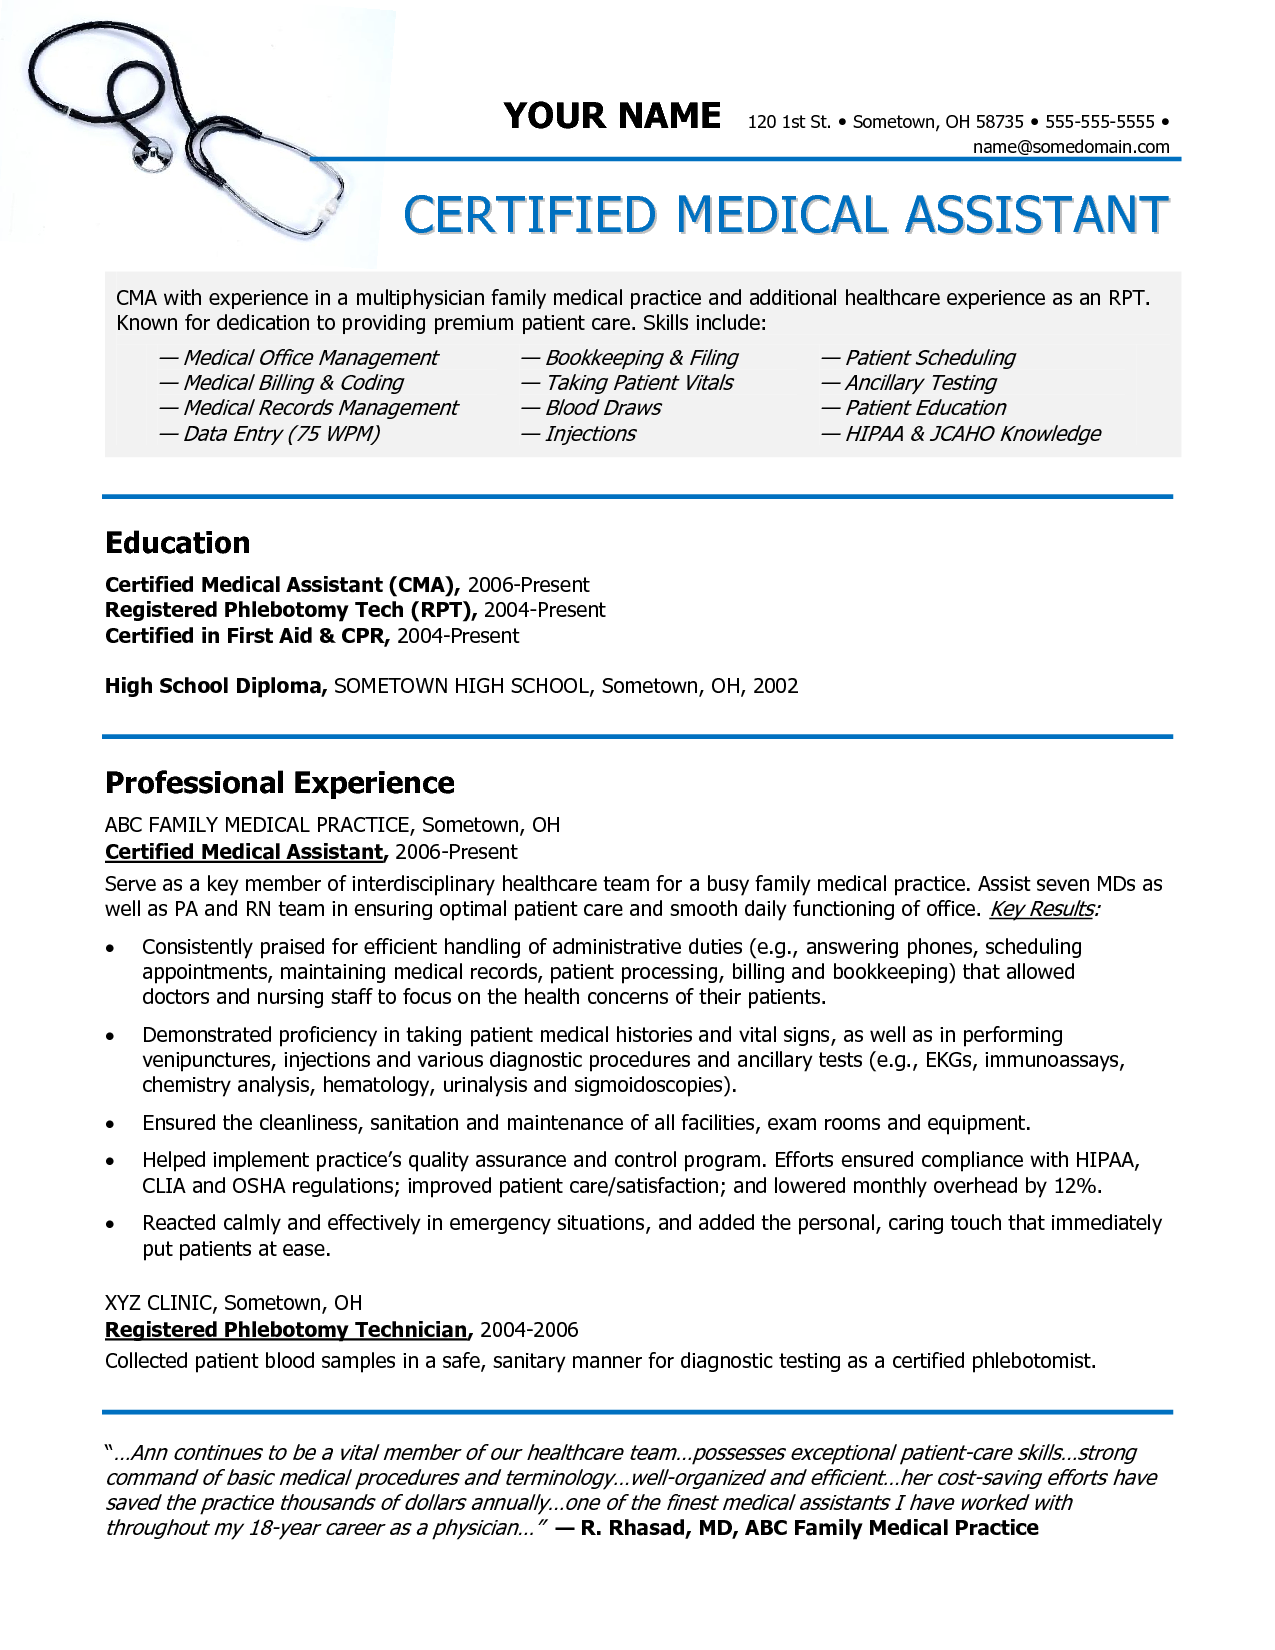 Awesome Objective For Resume Medical Assistant Medical Assistant Resume Sample, Medical  Resume Templates 14 Medical Assistant Resume Uxhandycom, Medical Assistant  ... In Medical Assistant Resume Objectives